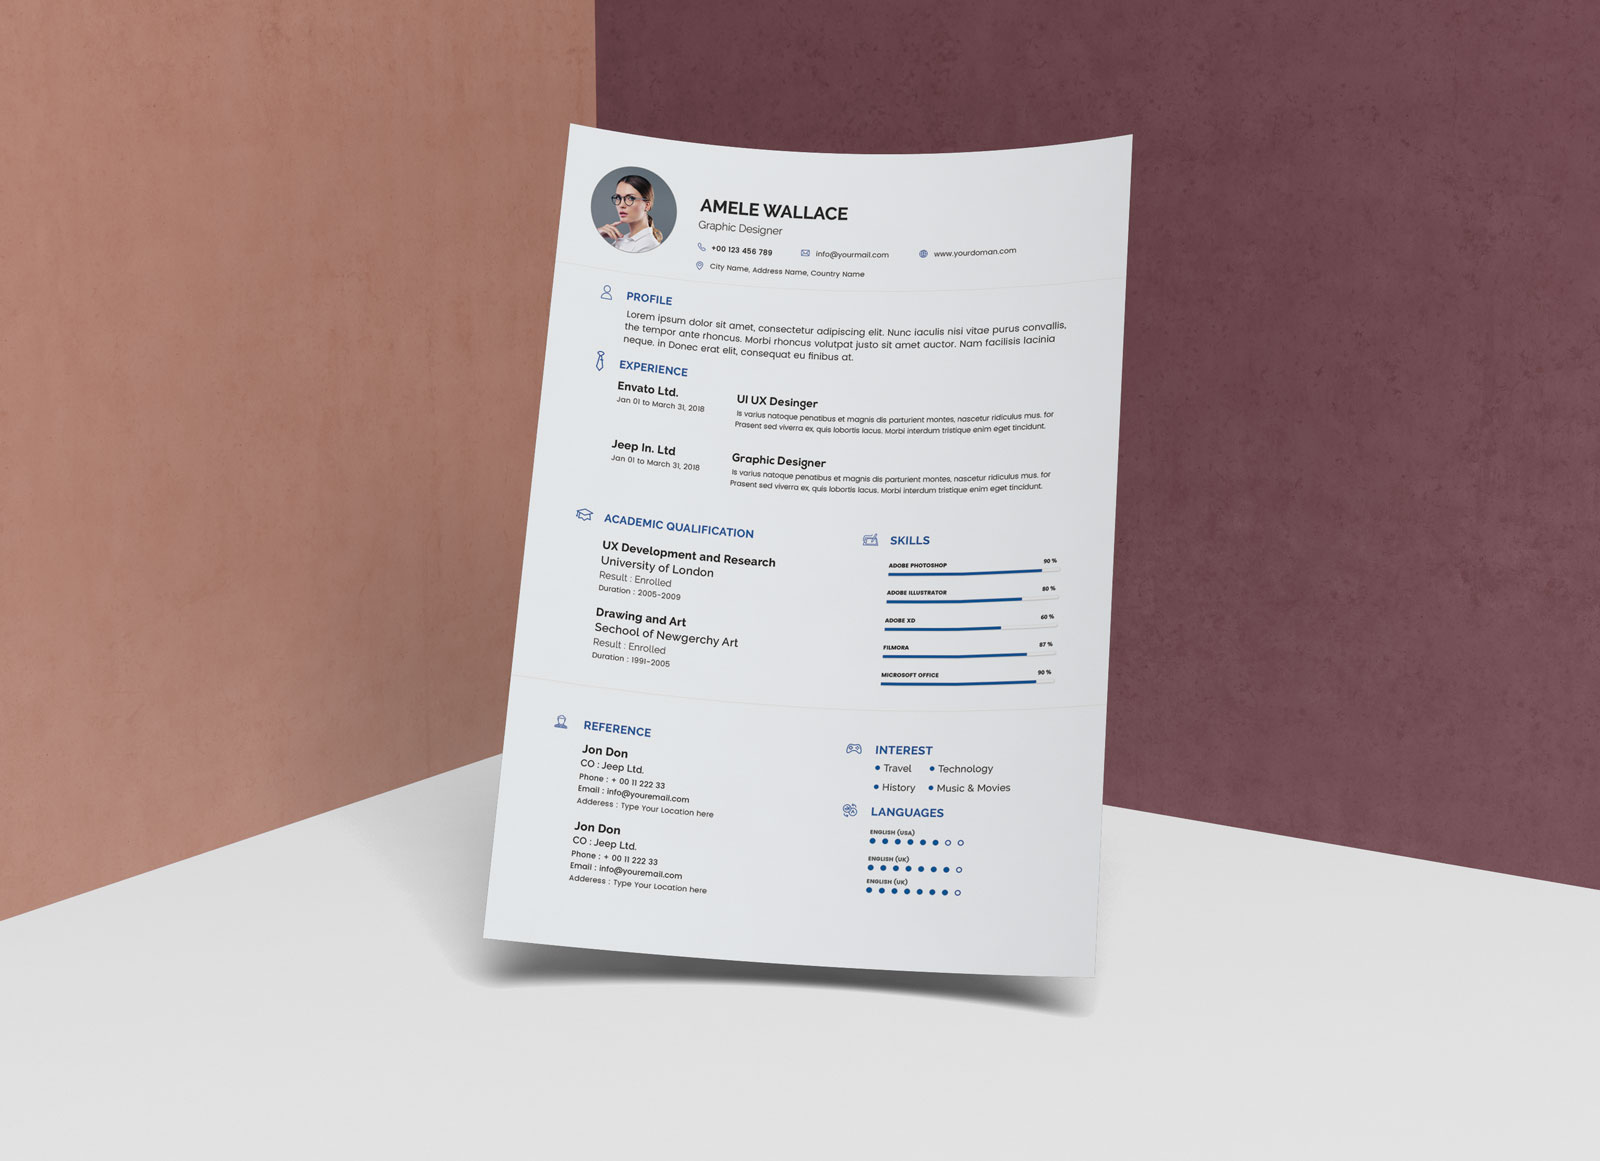 Free-Simple-Resume-Template-in-Photoshop-PSD-Format-3